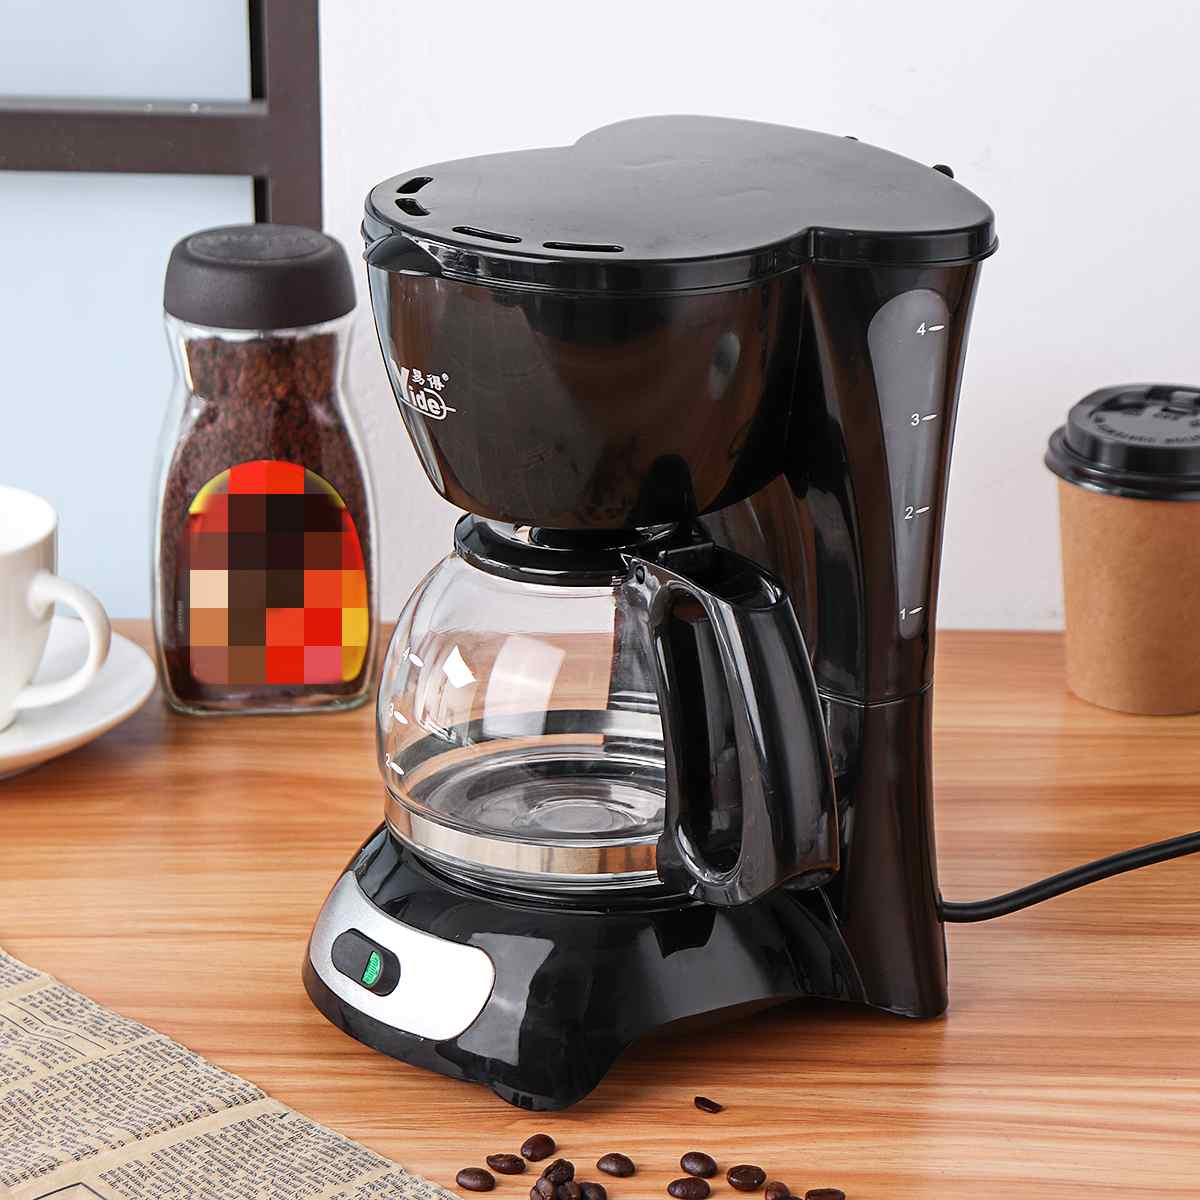 650W 220V Electric Coffee Maker Automatic Insulation Pot Small Drip Commercial American Coffee Machine Kitchen 4-6 People 4-Cups650W 220V Electric Coffee Maker Automatic Insulation Pot Small Drip Commercial American Coffee Machine Kitchen 4-6 People 4-Cups